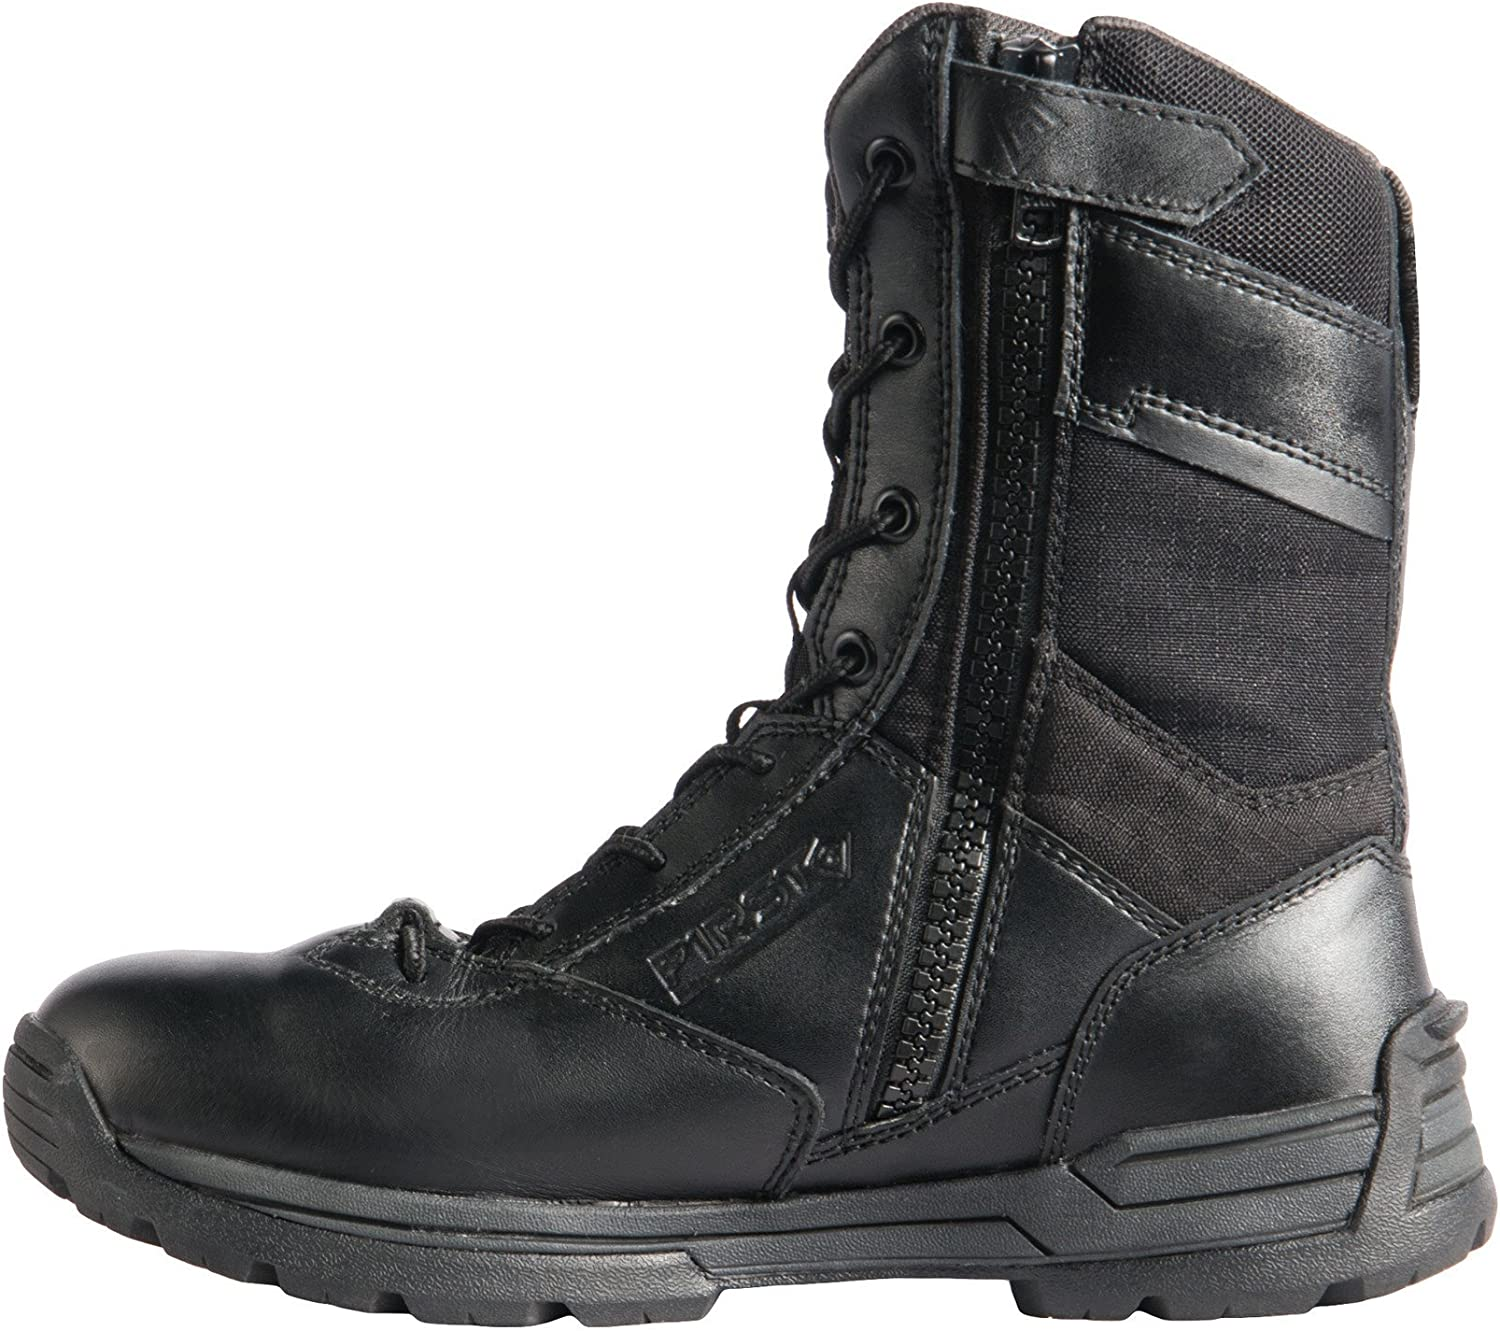 First Tactical Women's 8 Safety Toe Side Zip Duty Boot